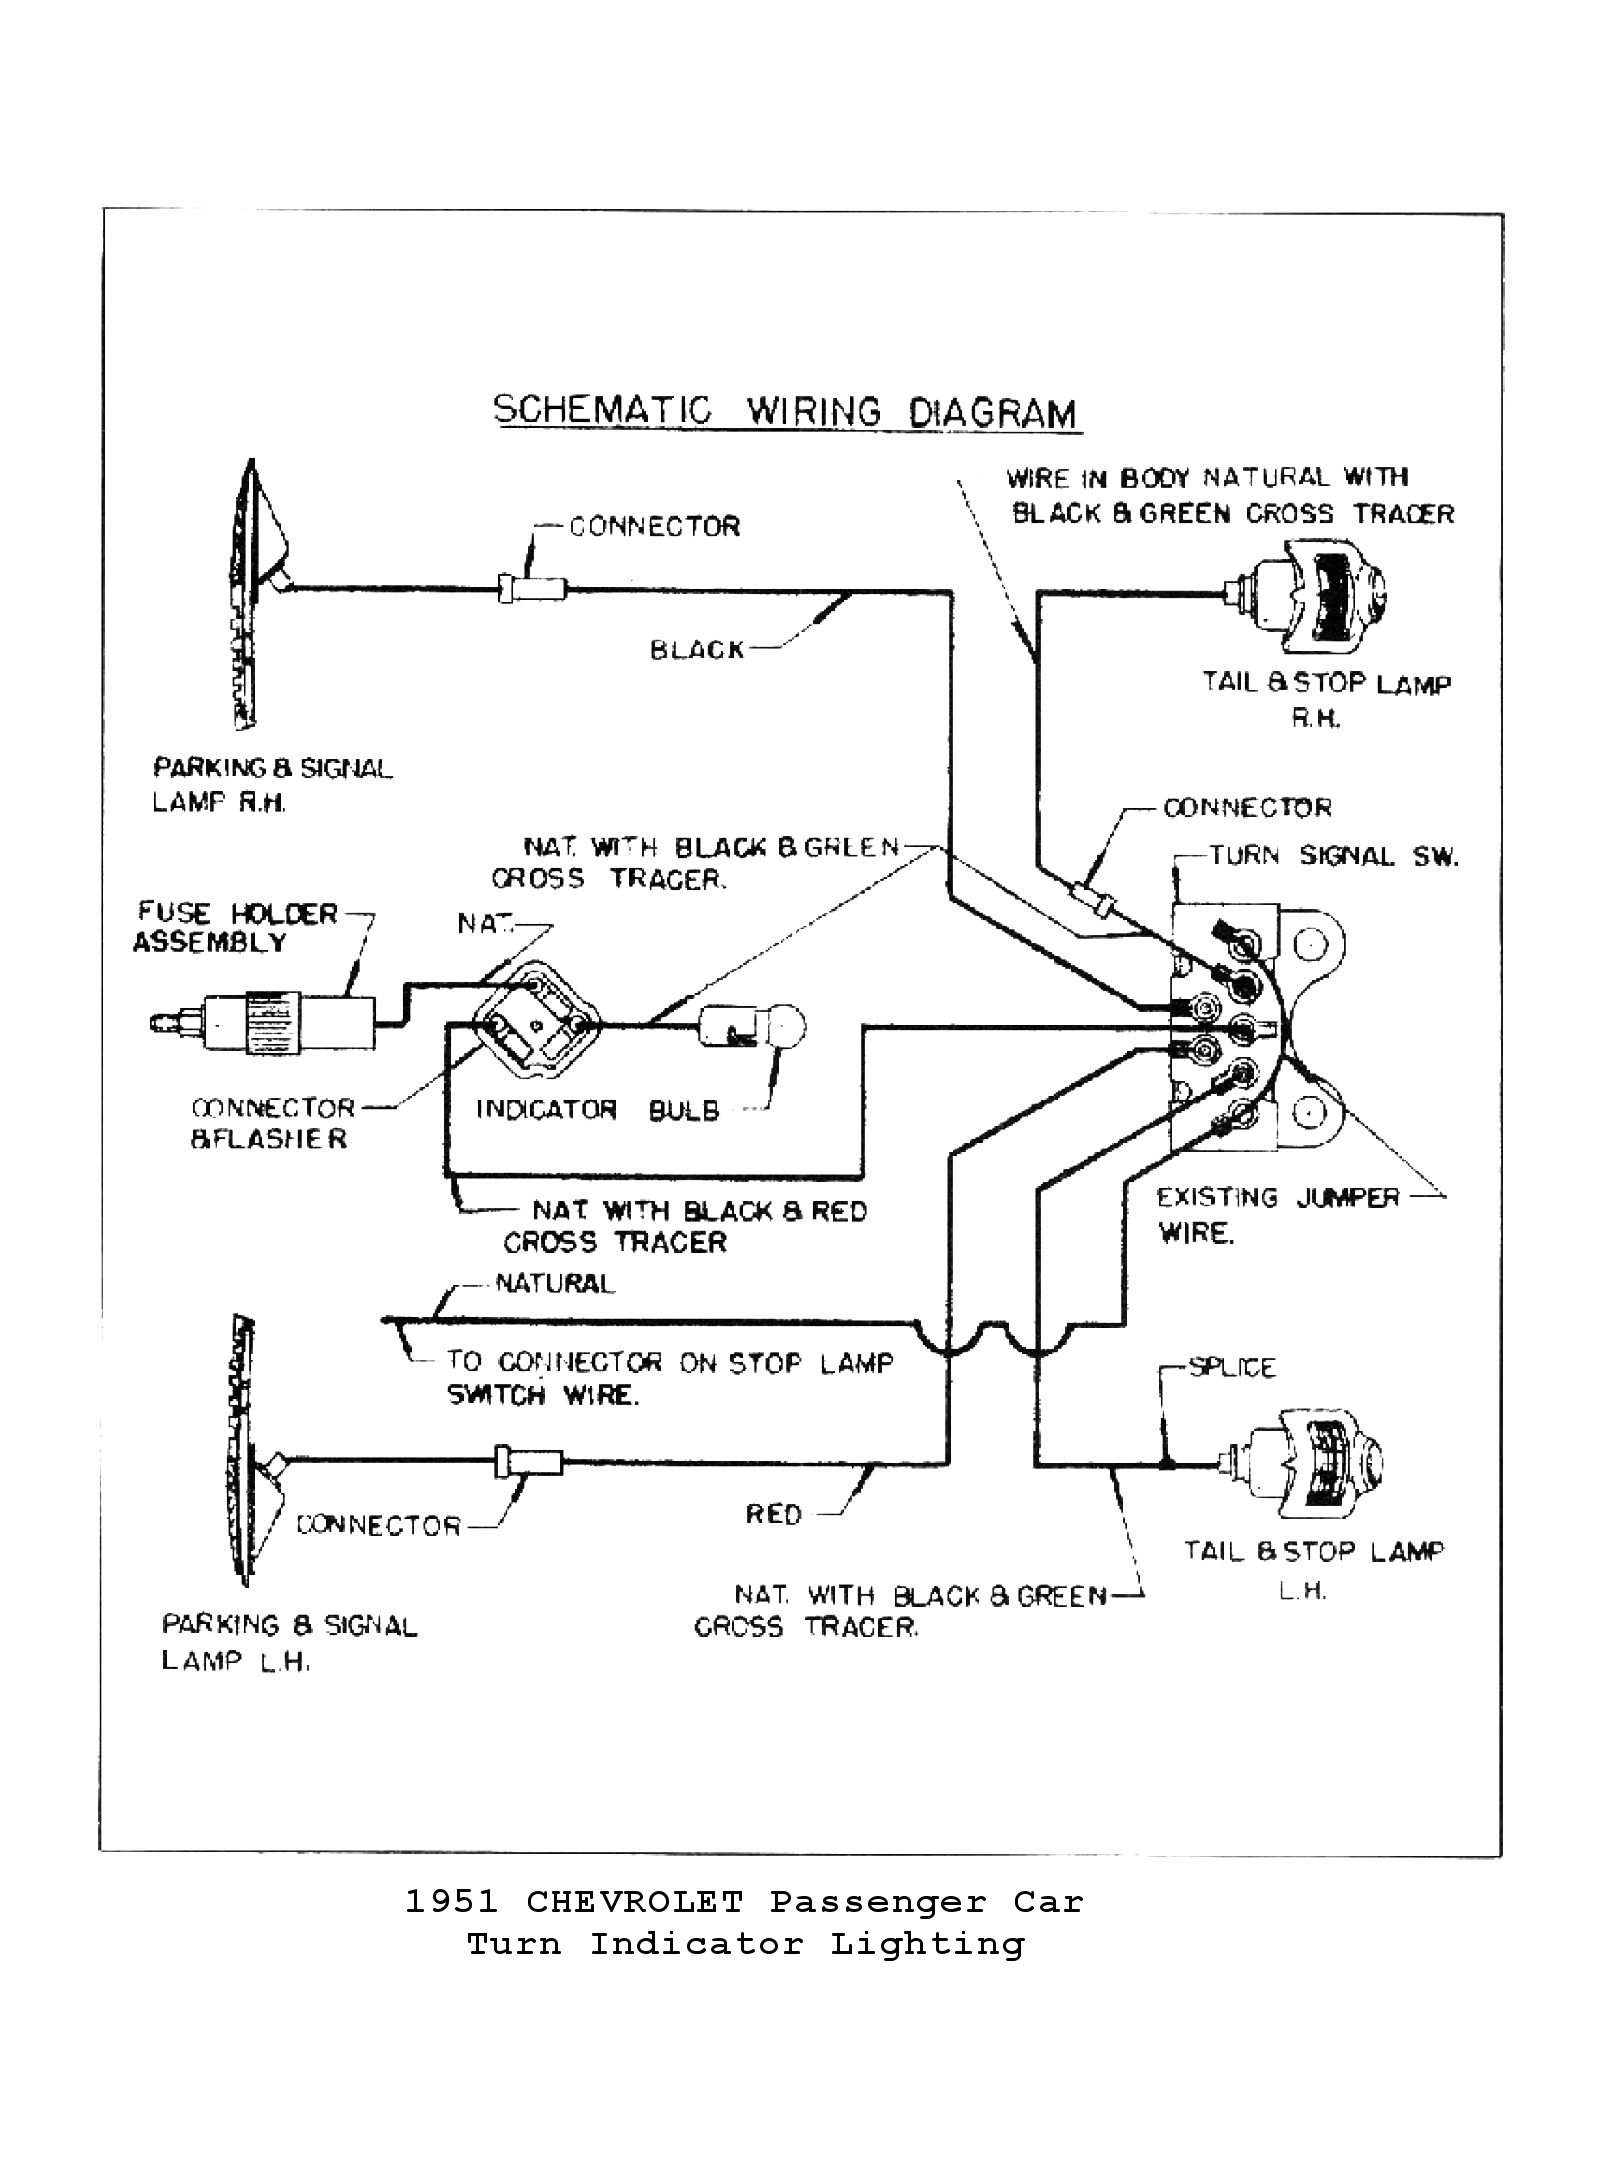 5152turnsignals chevy wiring diagrams 1953 chevy bel air wiring diagram at readyjetset.co